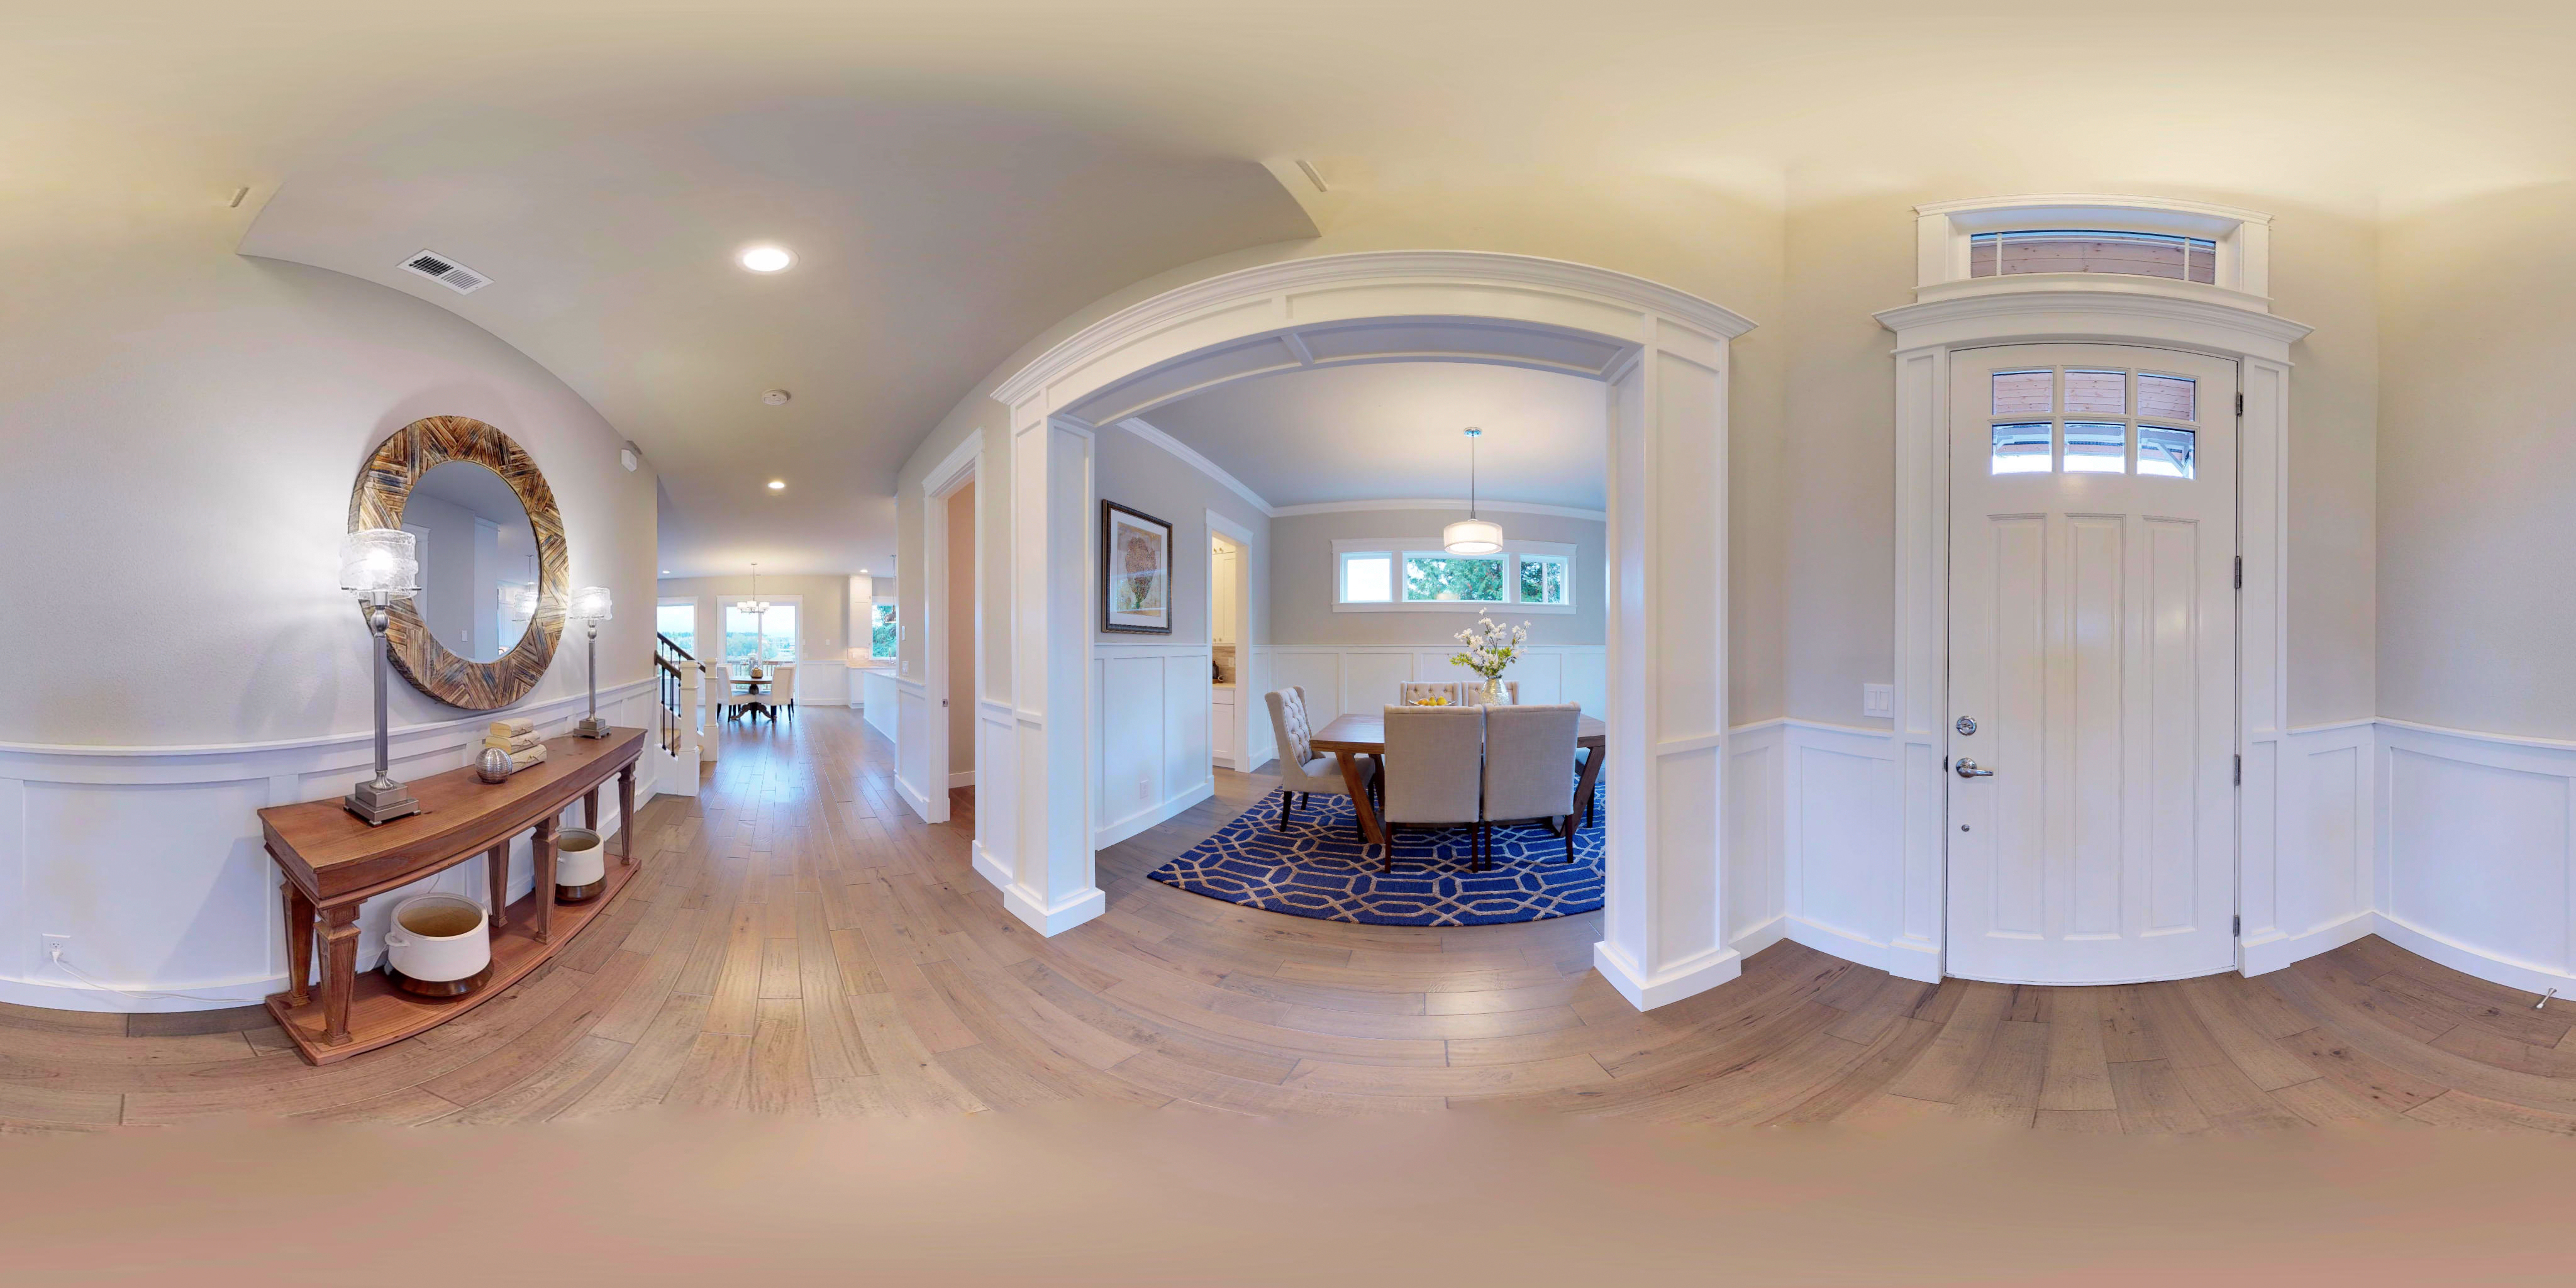 A stretched panoramic view of the foyer of a house.